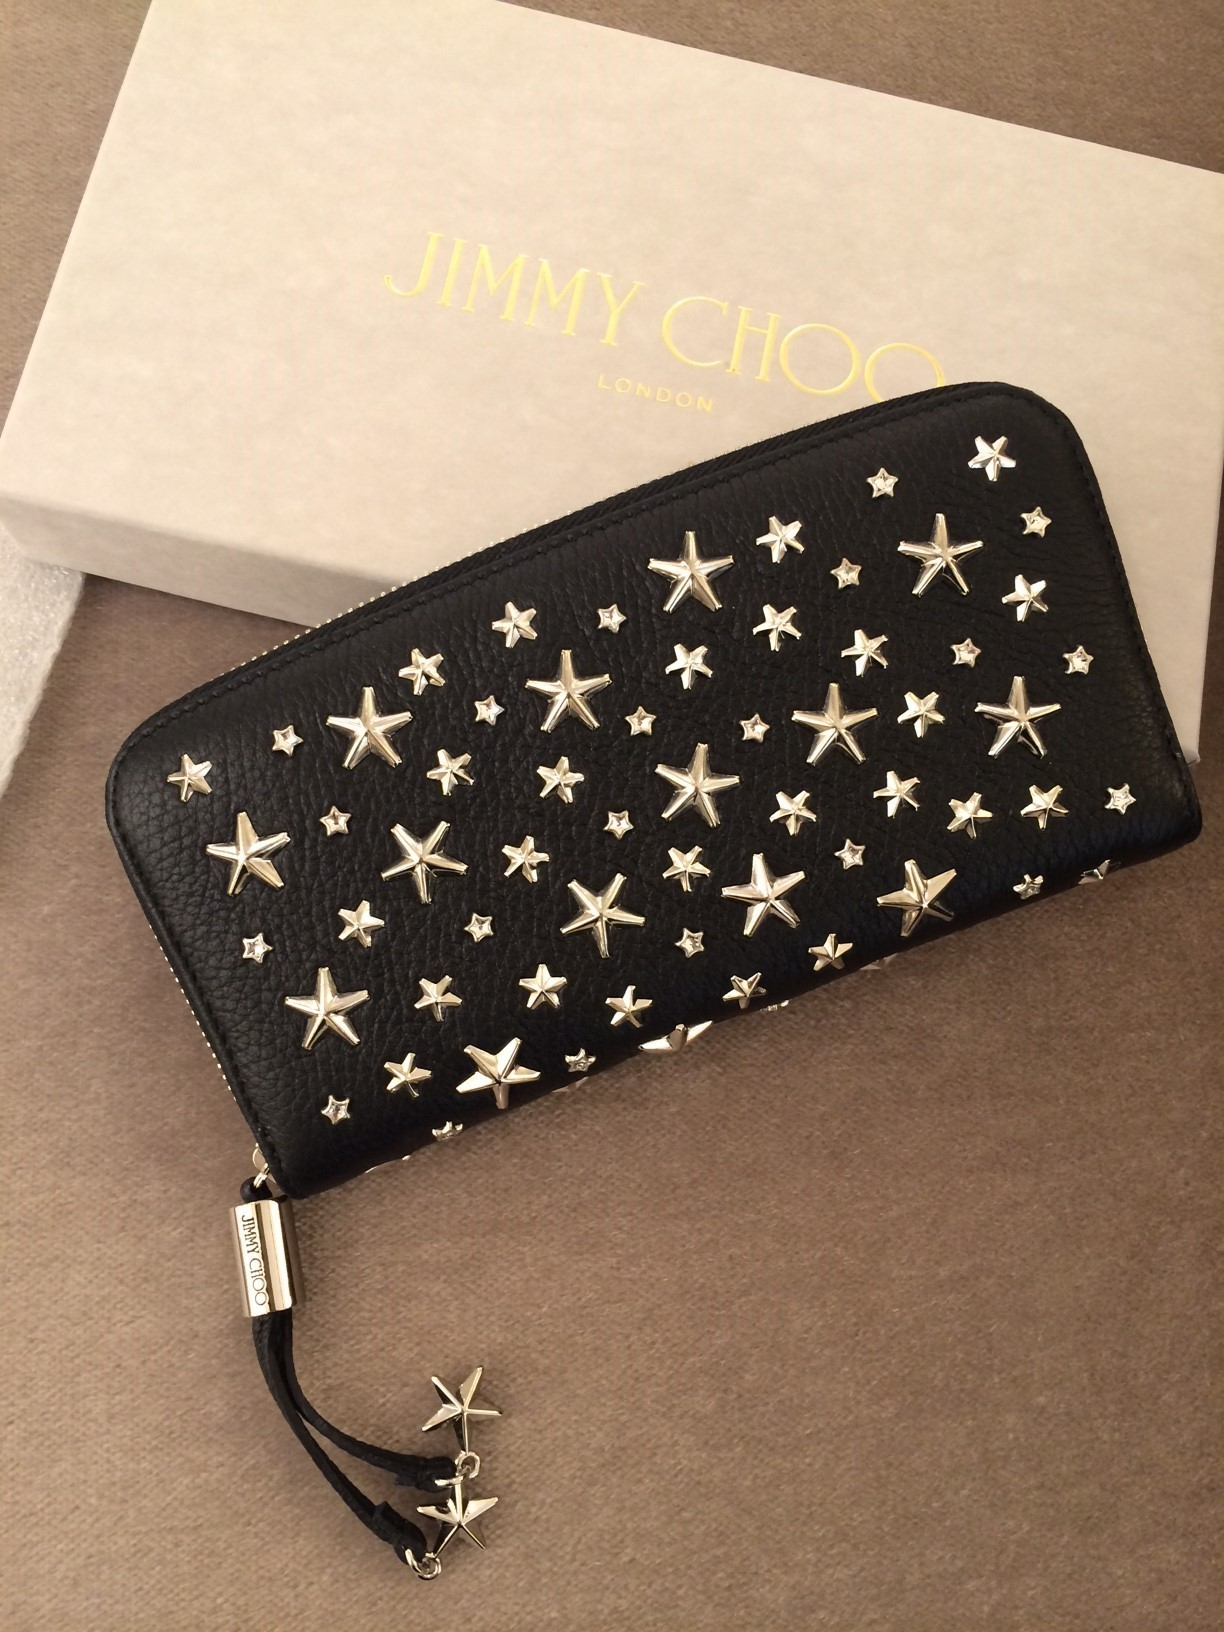 Jimmy Choo Filipa Cristal Star Stads Wallet 関税送料込